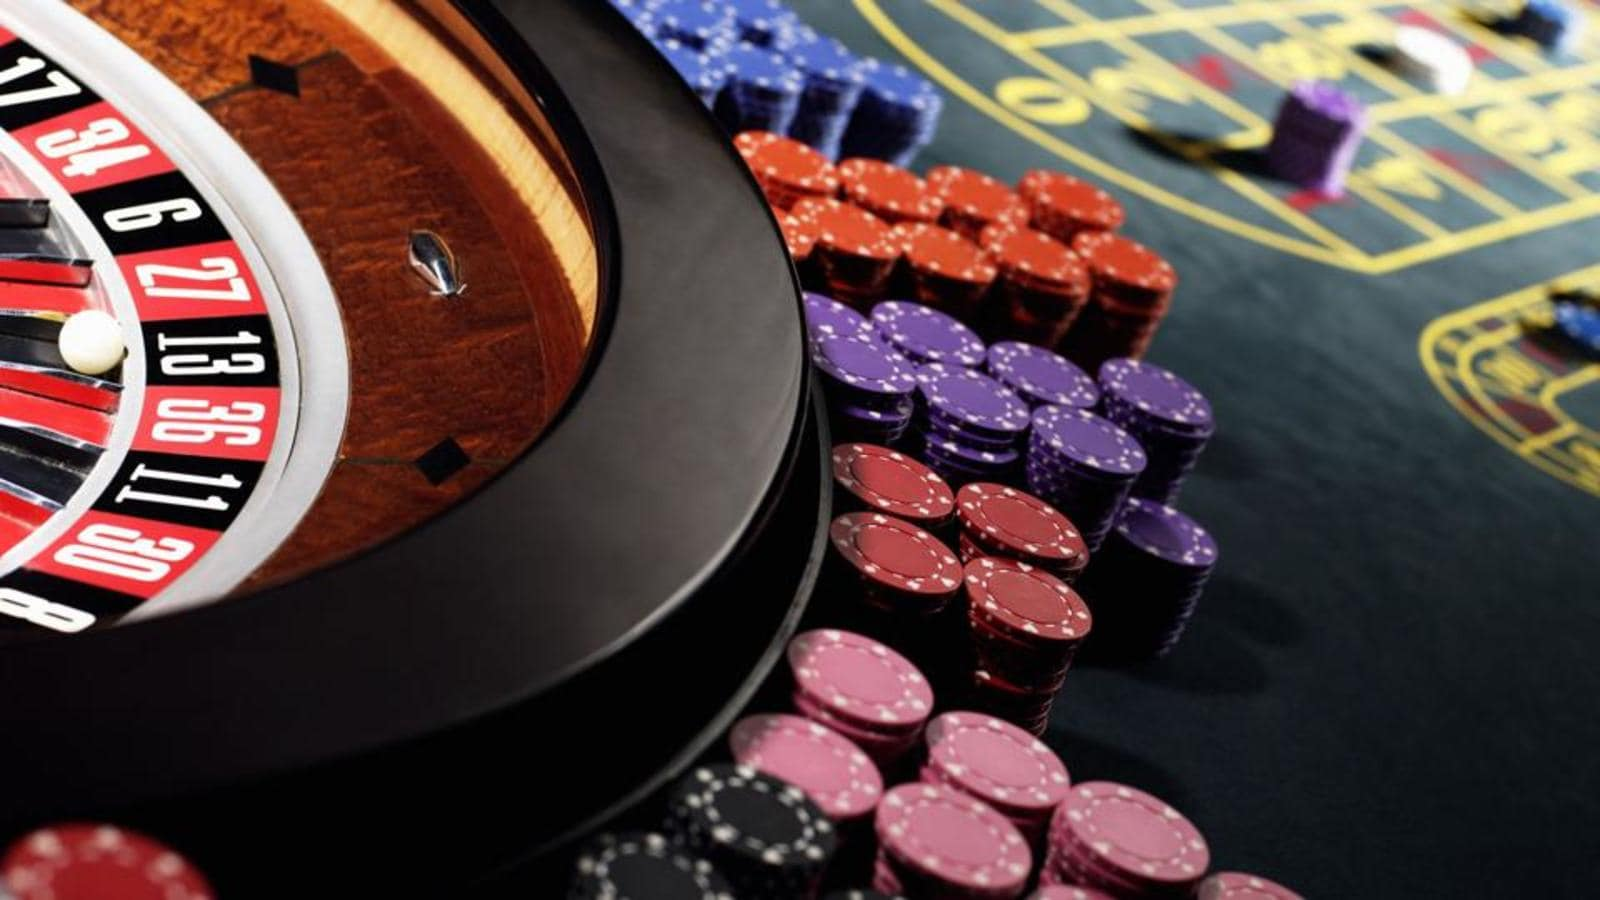 Companies may move court against govt ban on online gambling and games    Latest News India - Hindustan Times